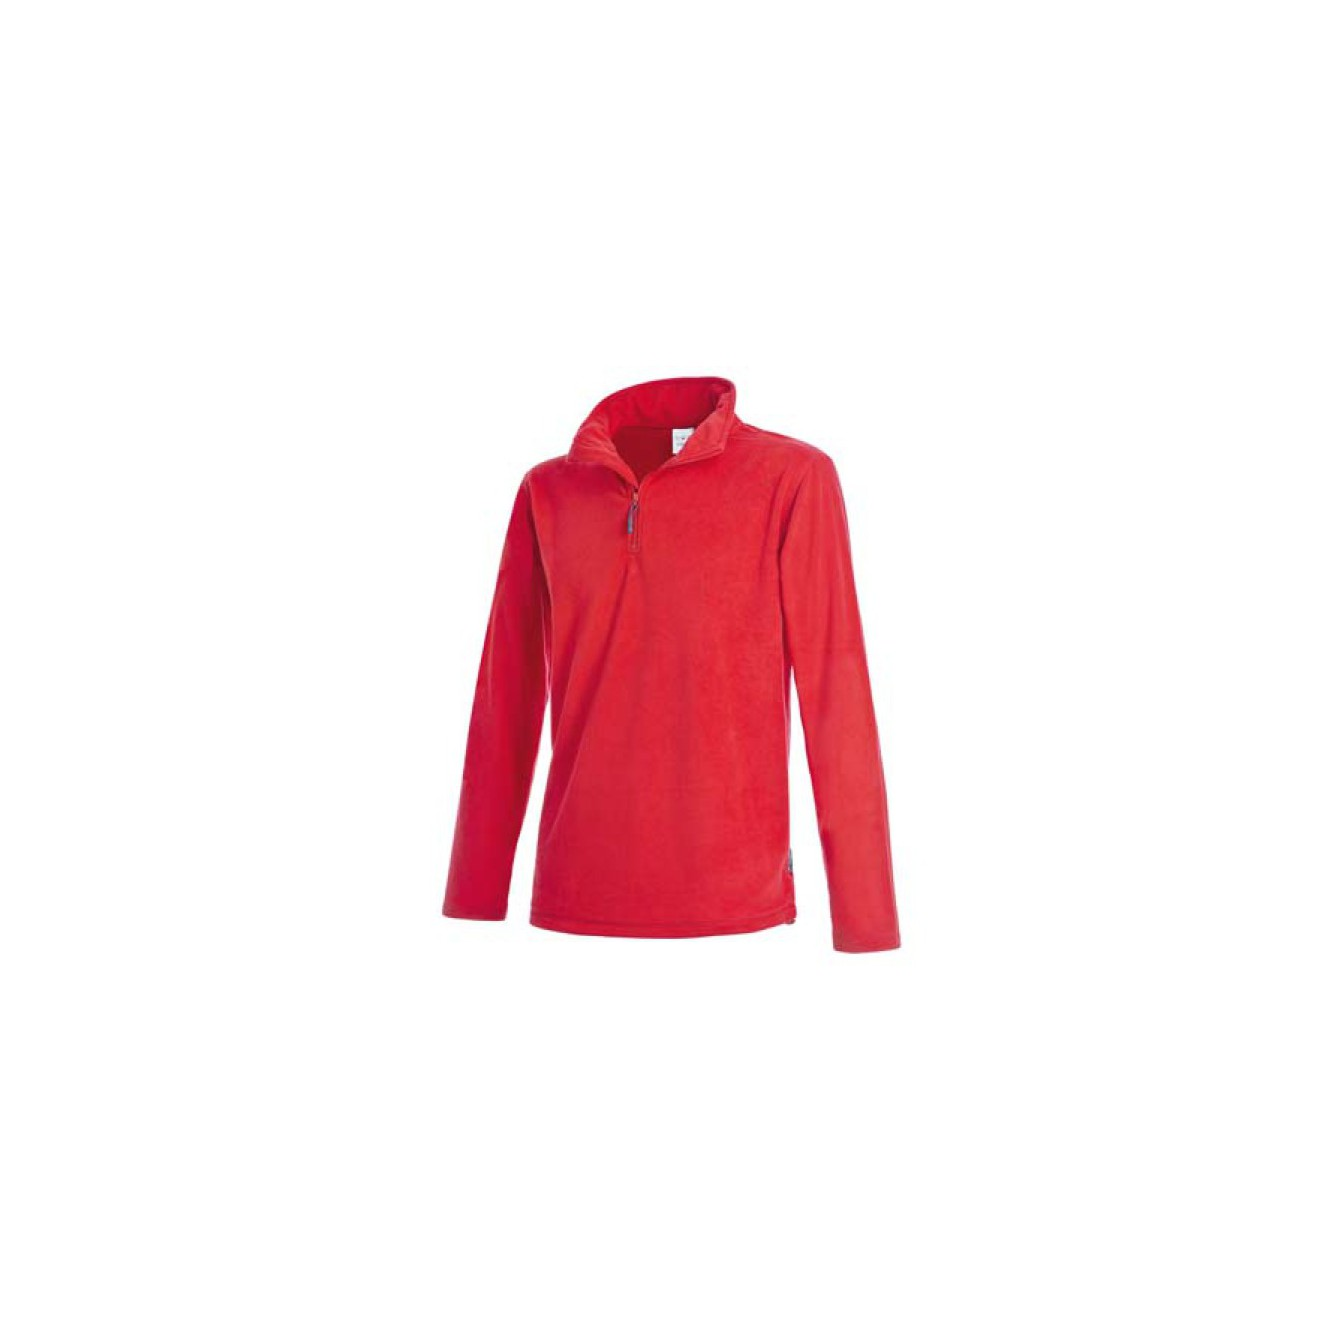 Polar fleece half zip